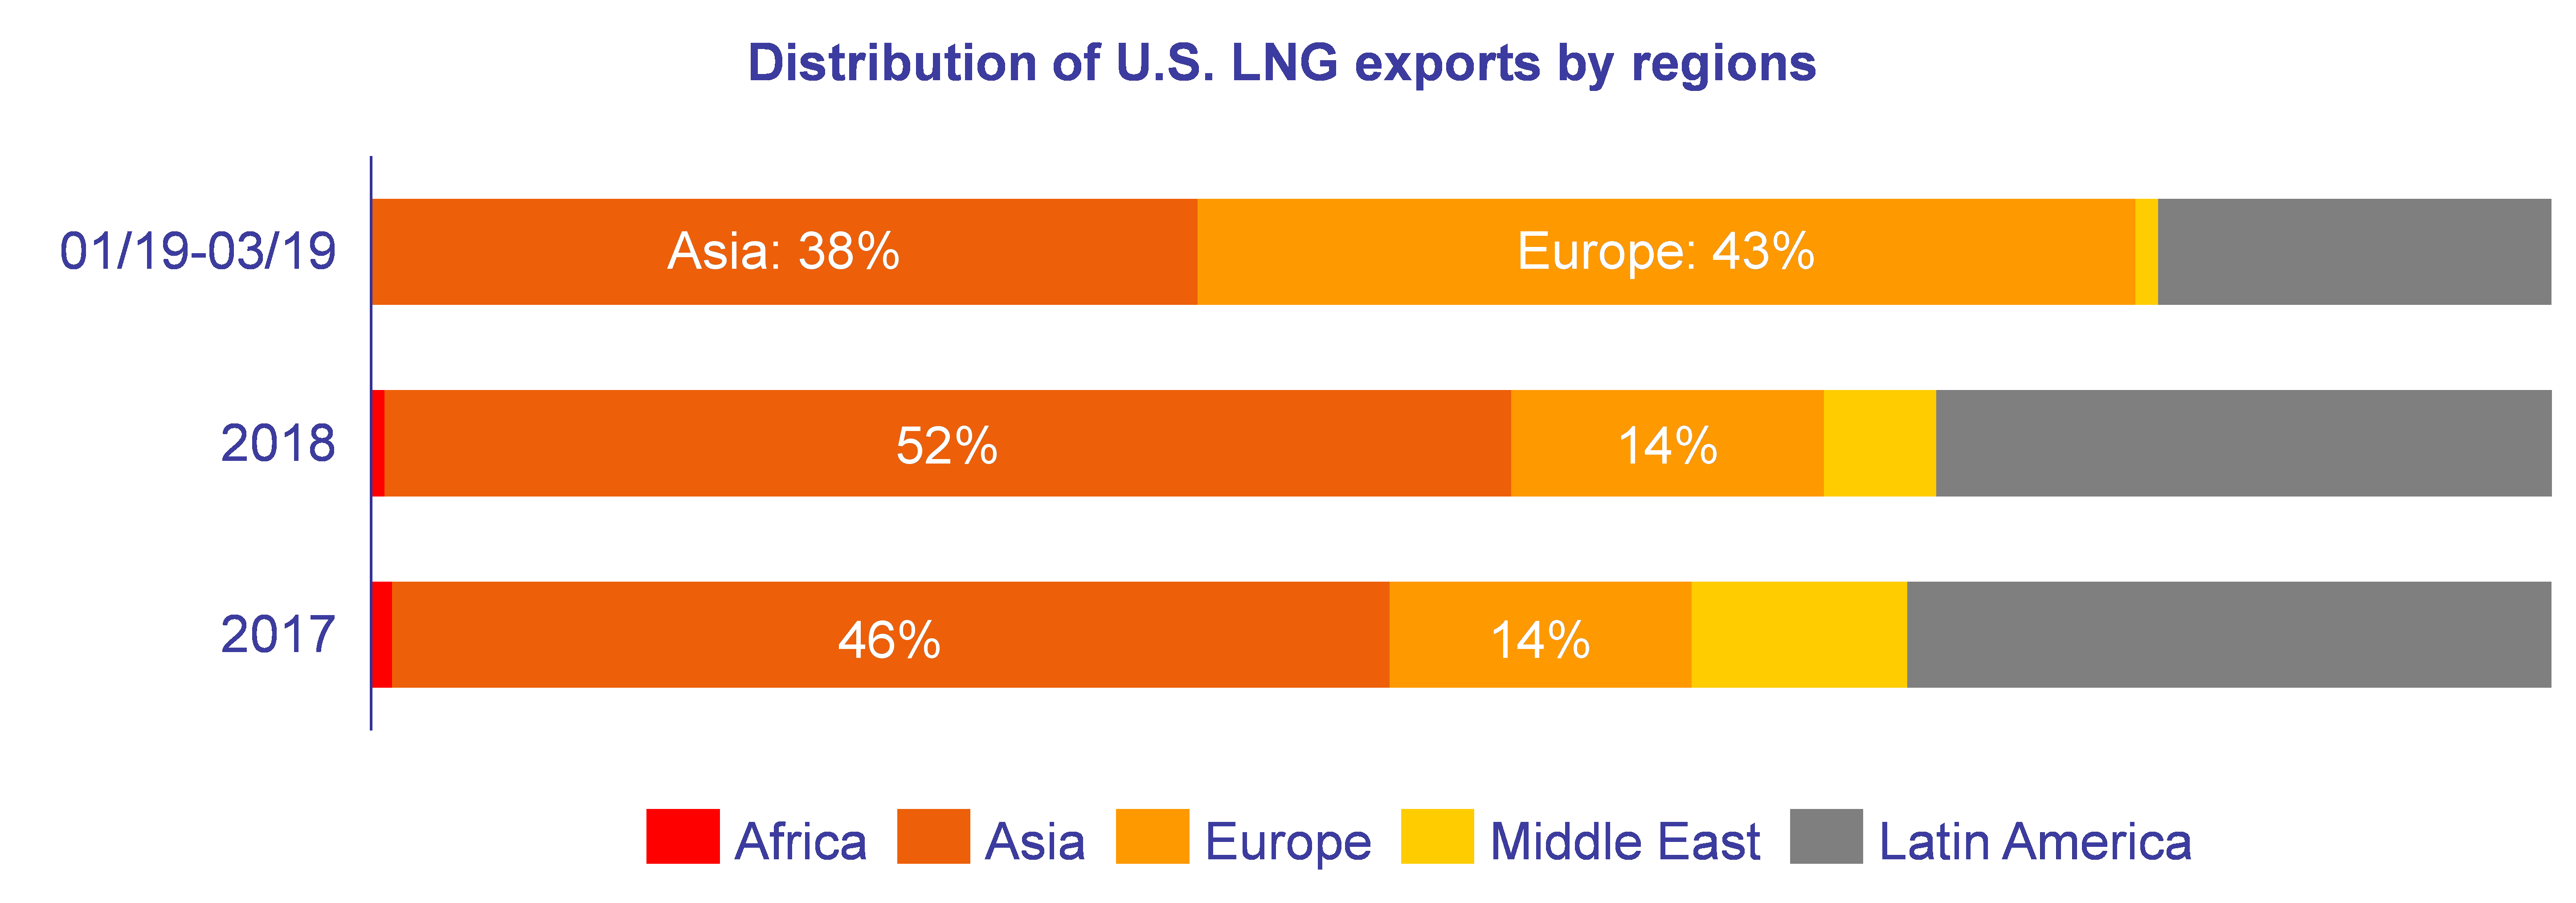 Distribution of U.S. LNG exports by regions